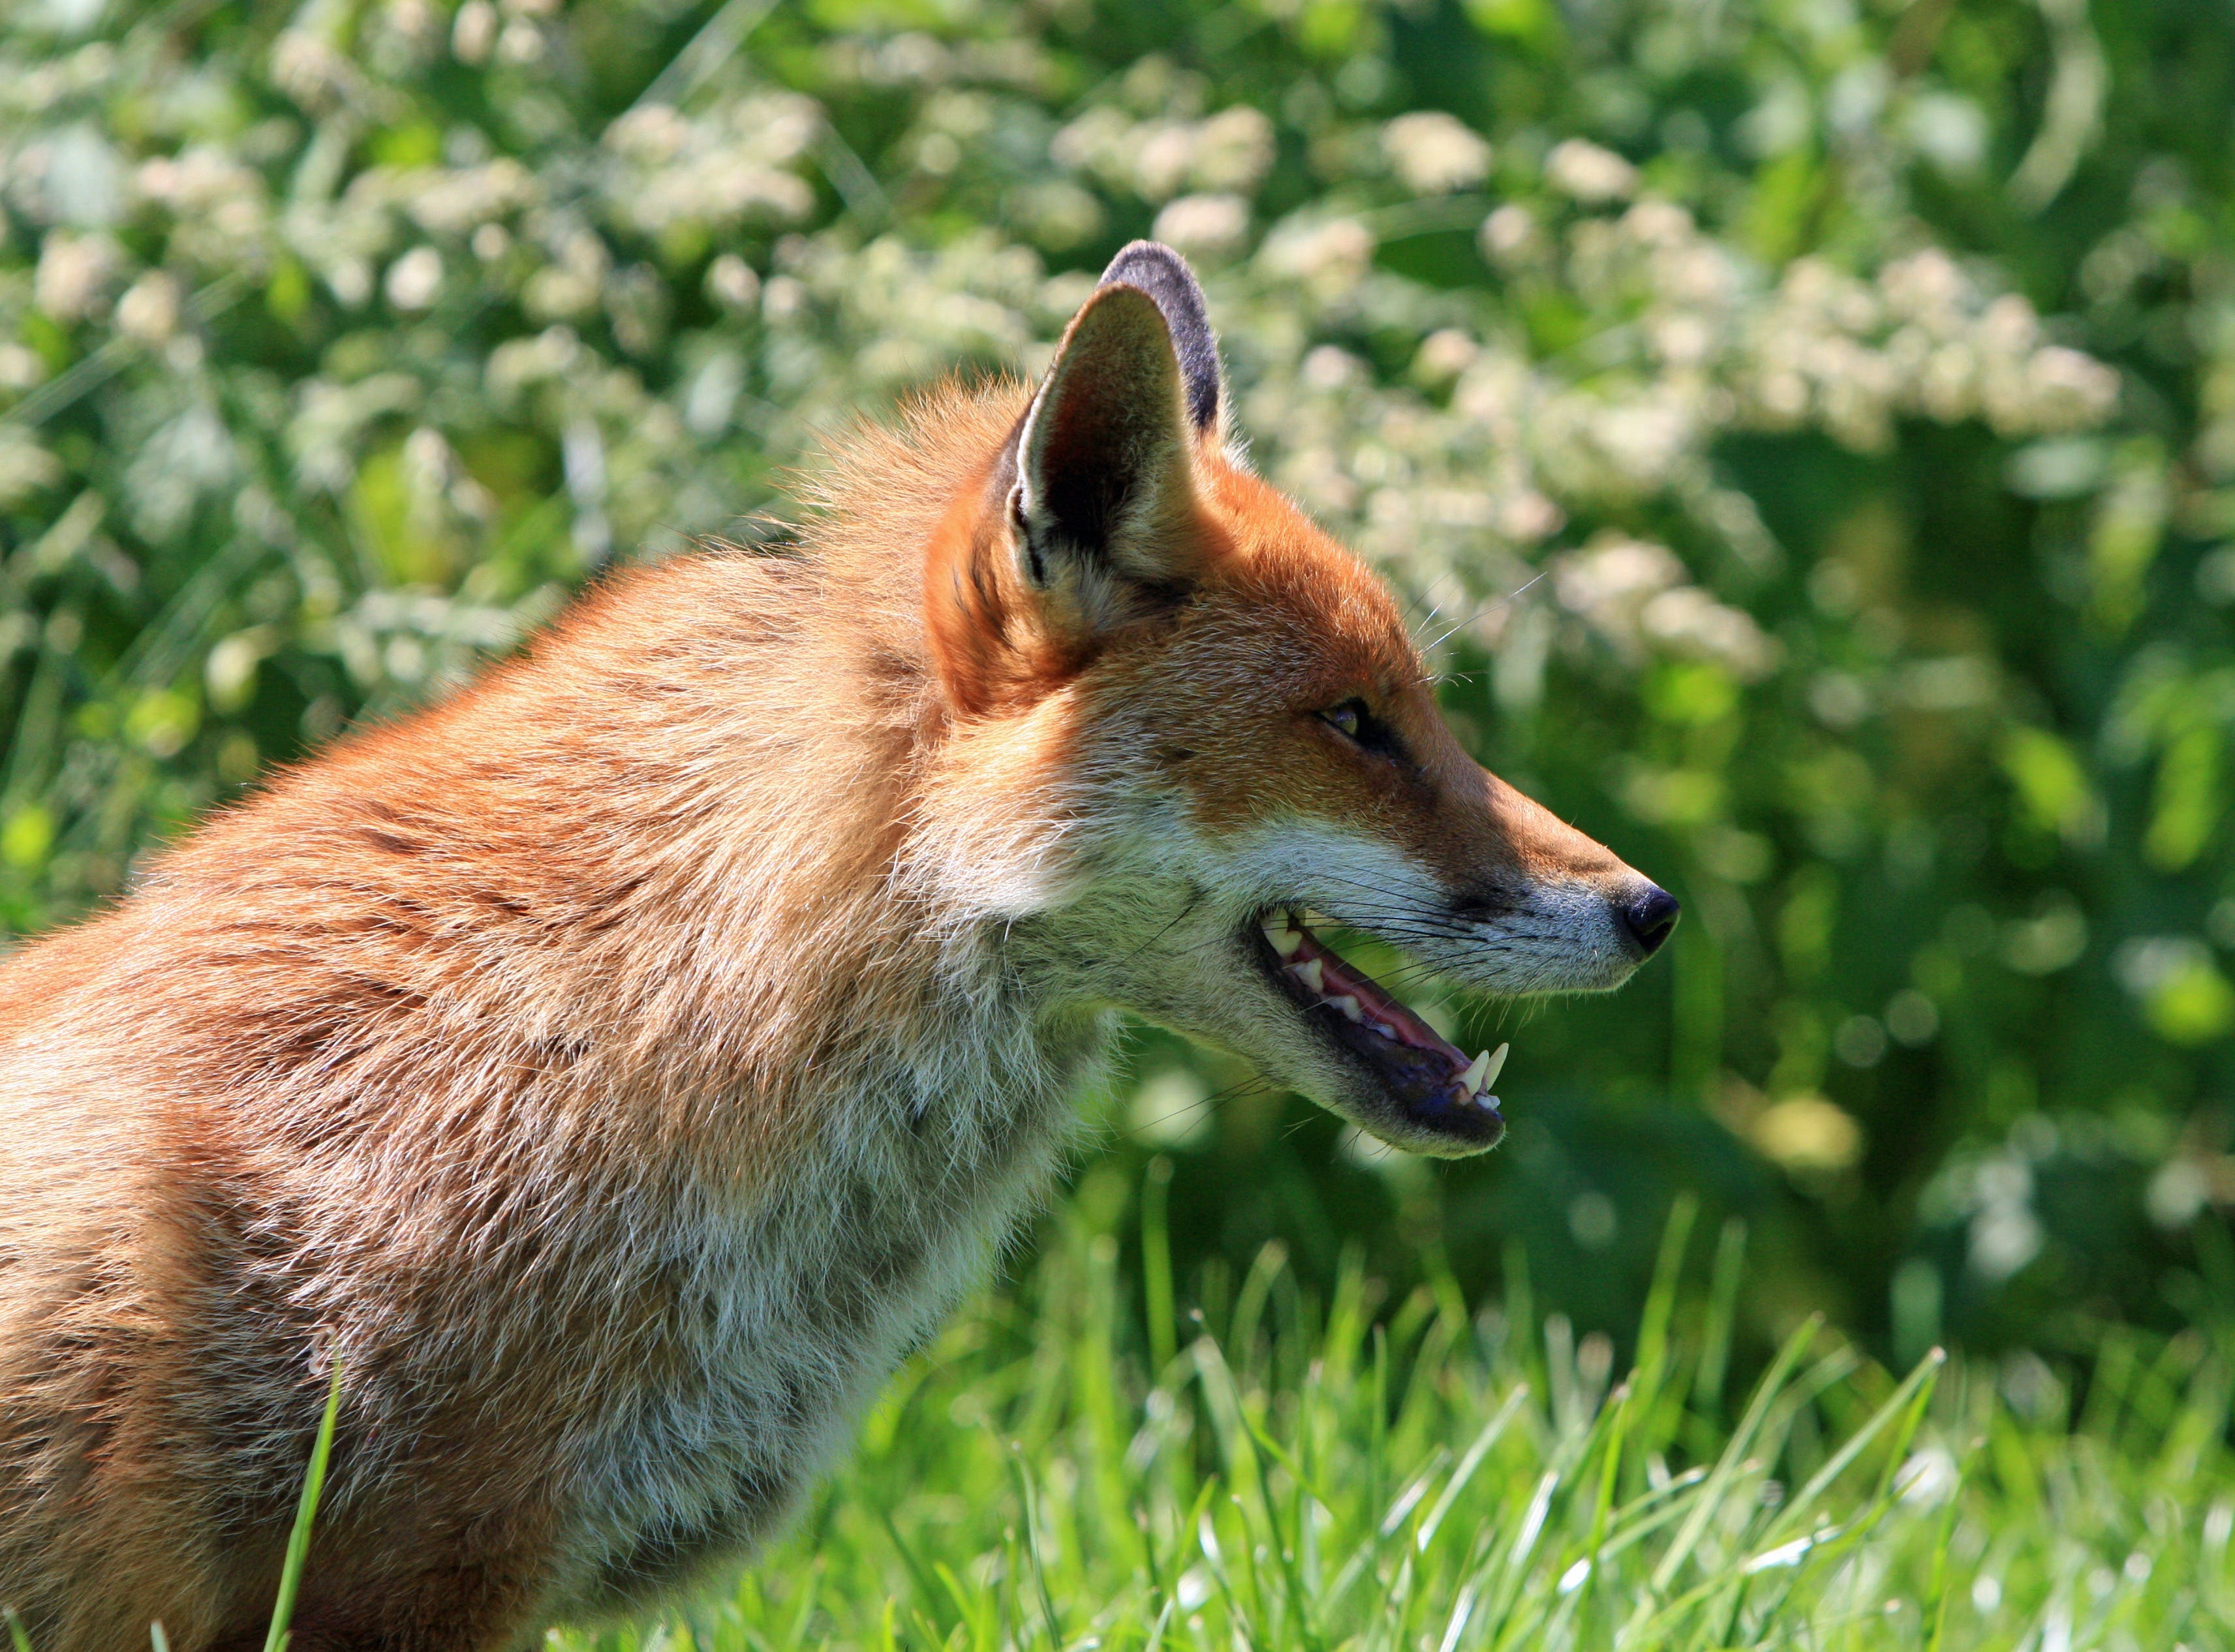 Brown Fox in Green Grass Field during Daytime